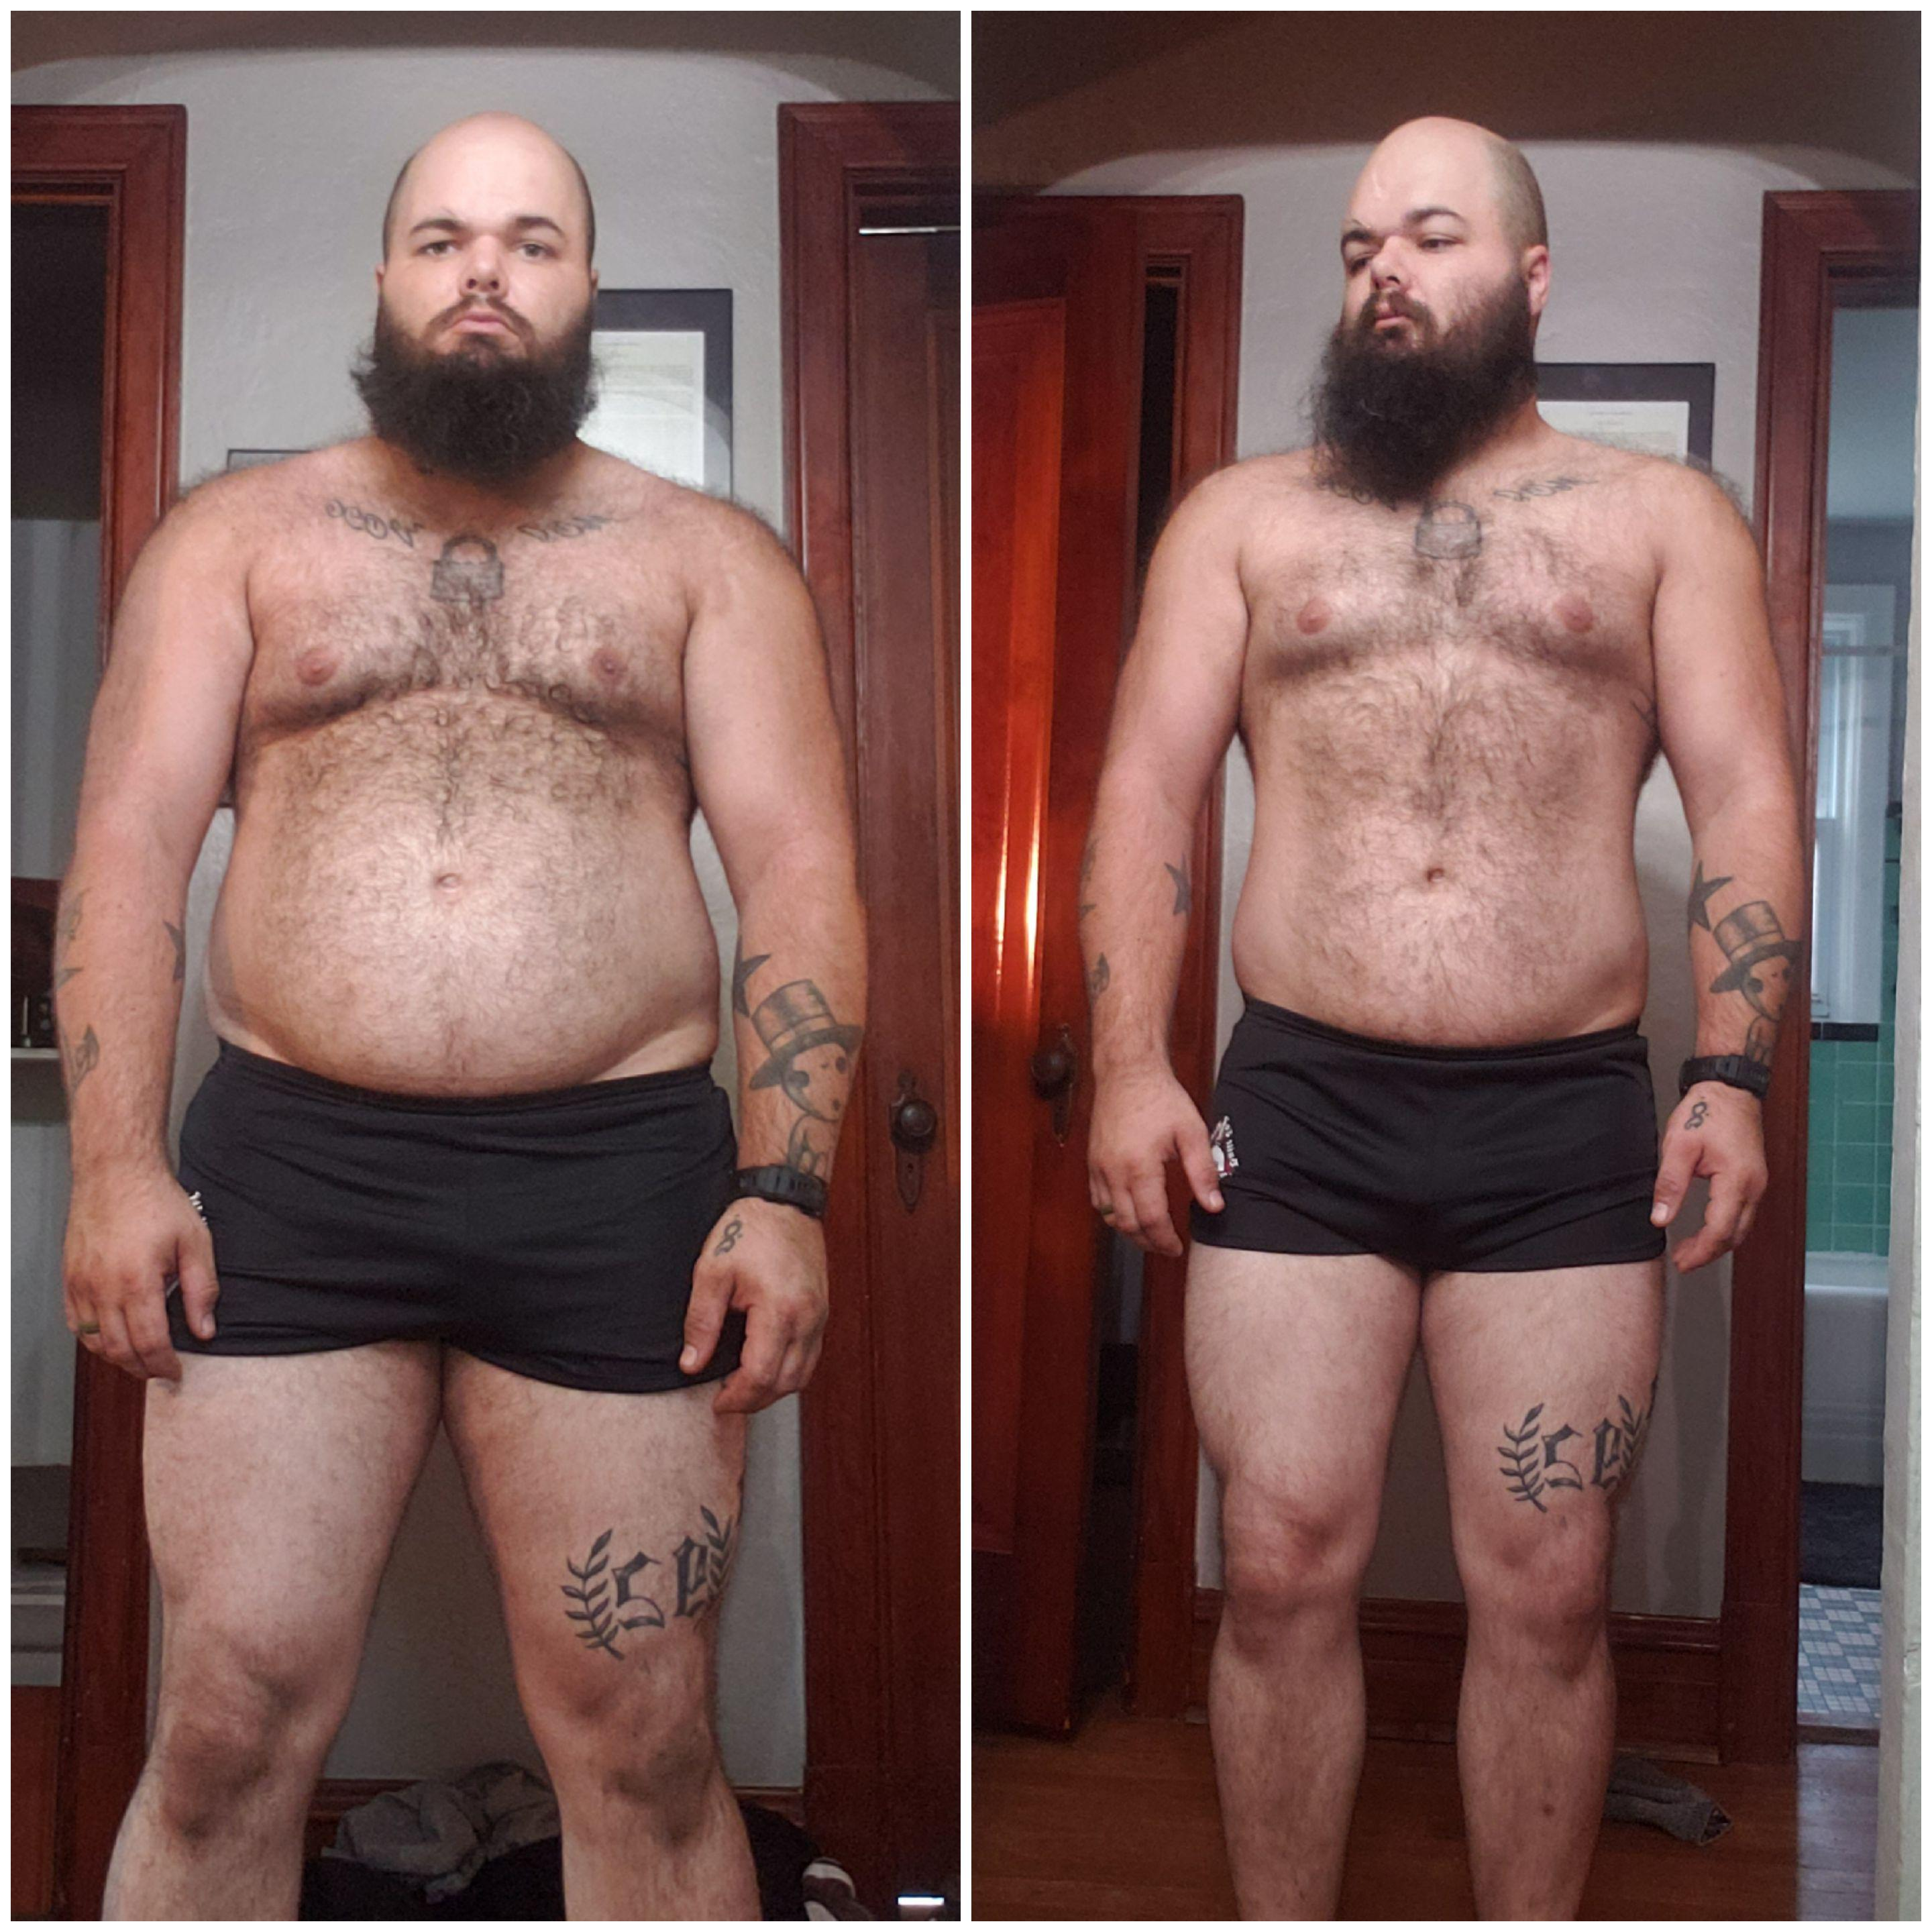 12 lbs Fat Loss Before and After 5 feet 7 Male 240 lbs to 228 lbs